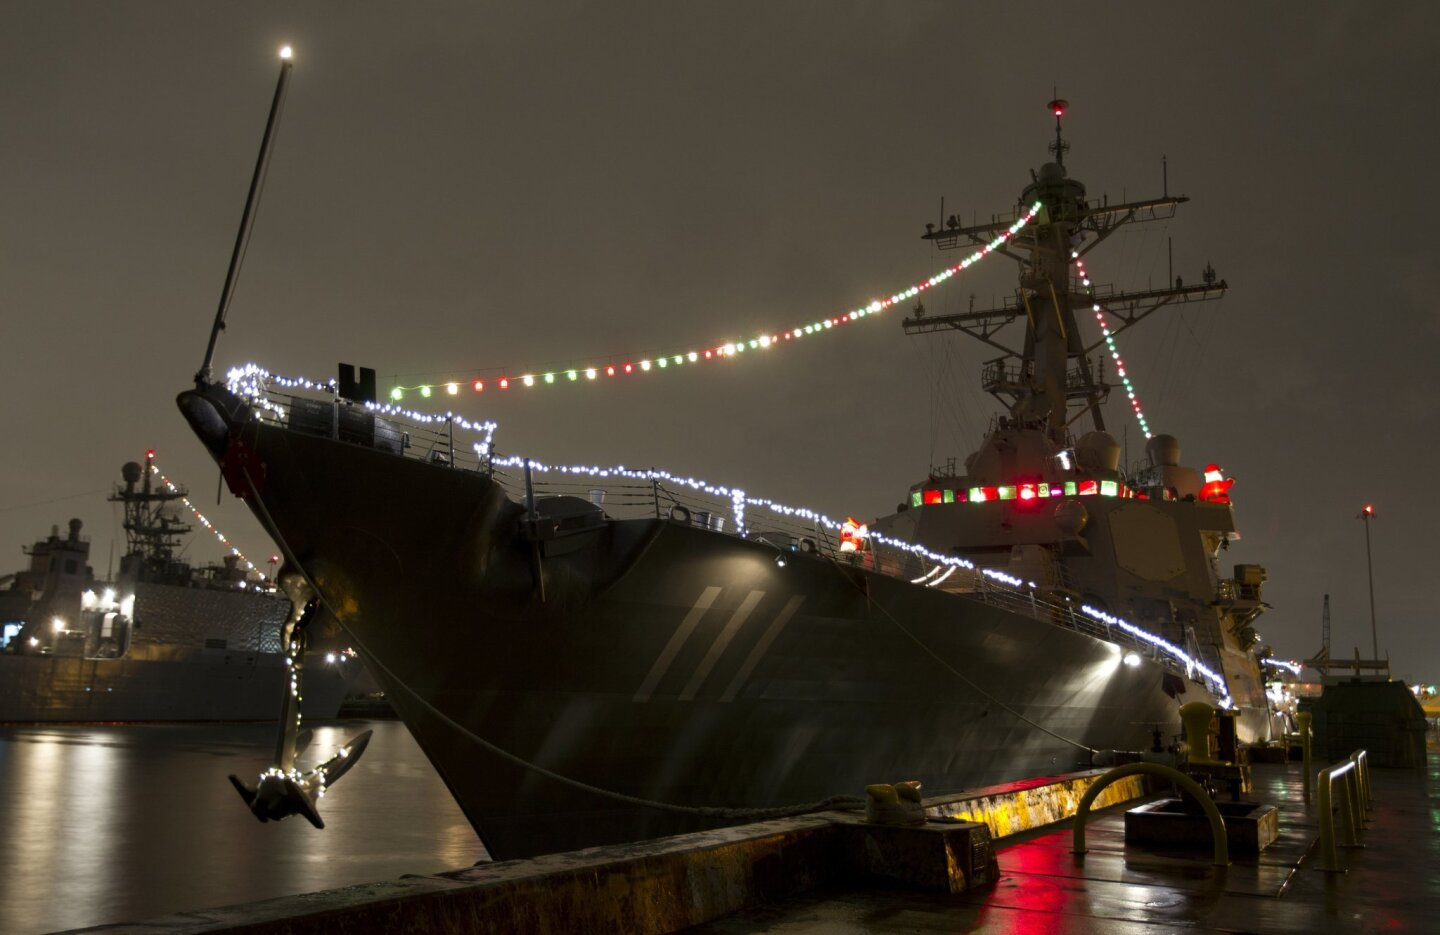 Ships decorated for the holidays